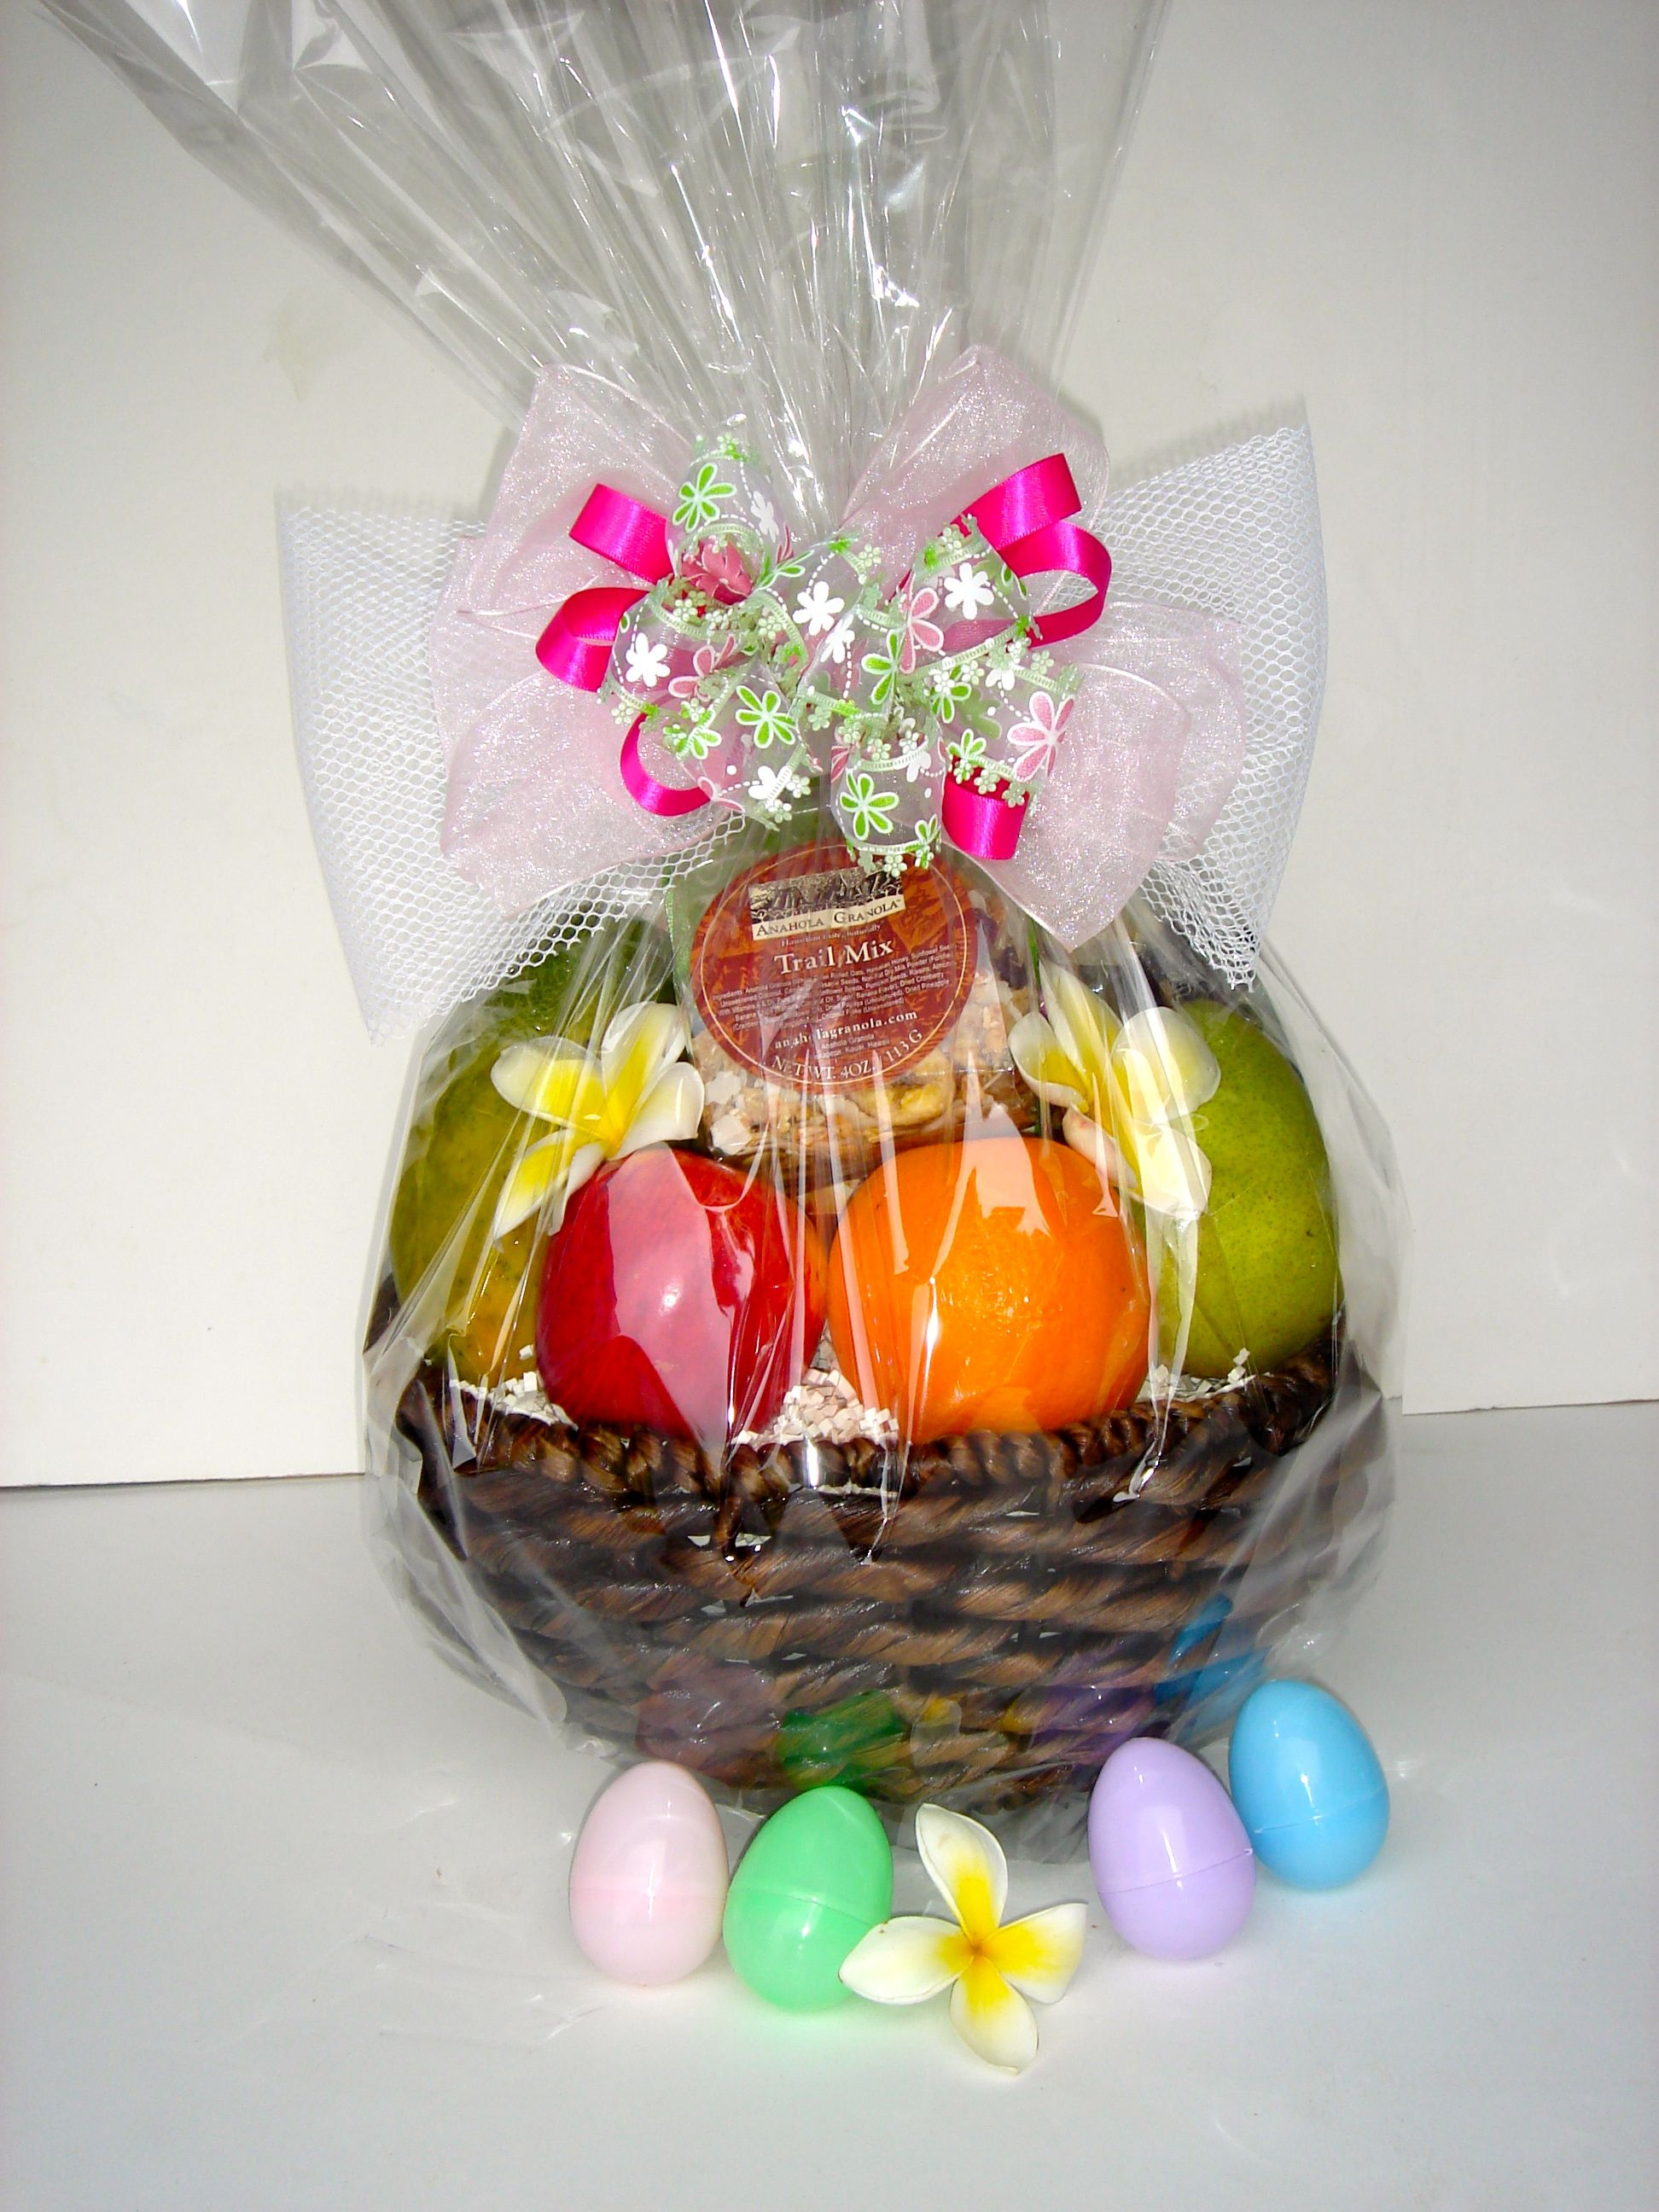 Happy healthy easter to you all exquisite basket expressions happy healthy easter to you all exquisite basket expressions distinctive hawaiian gourmet gift negle Images